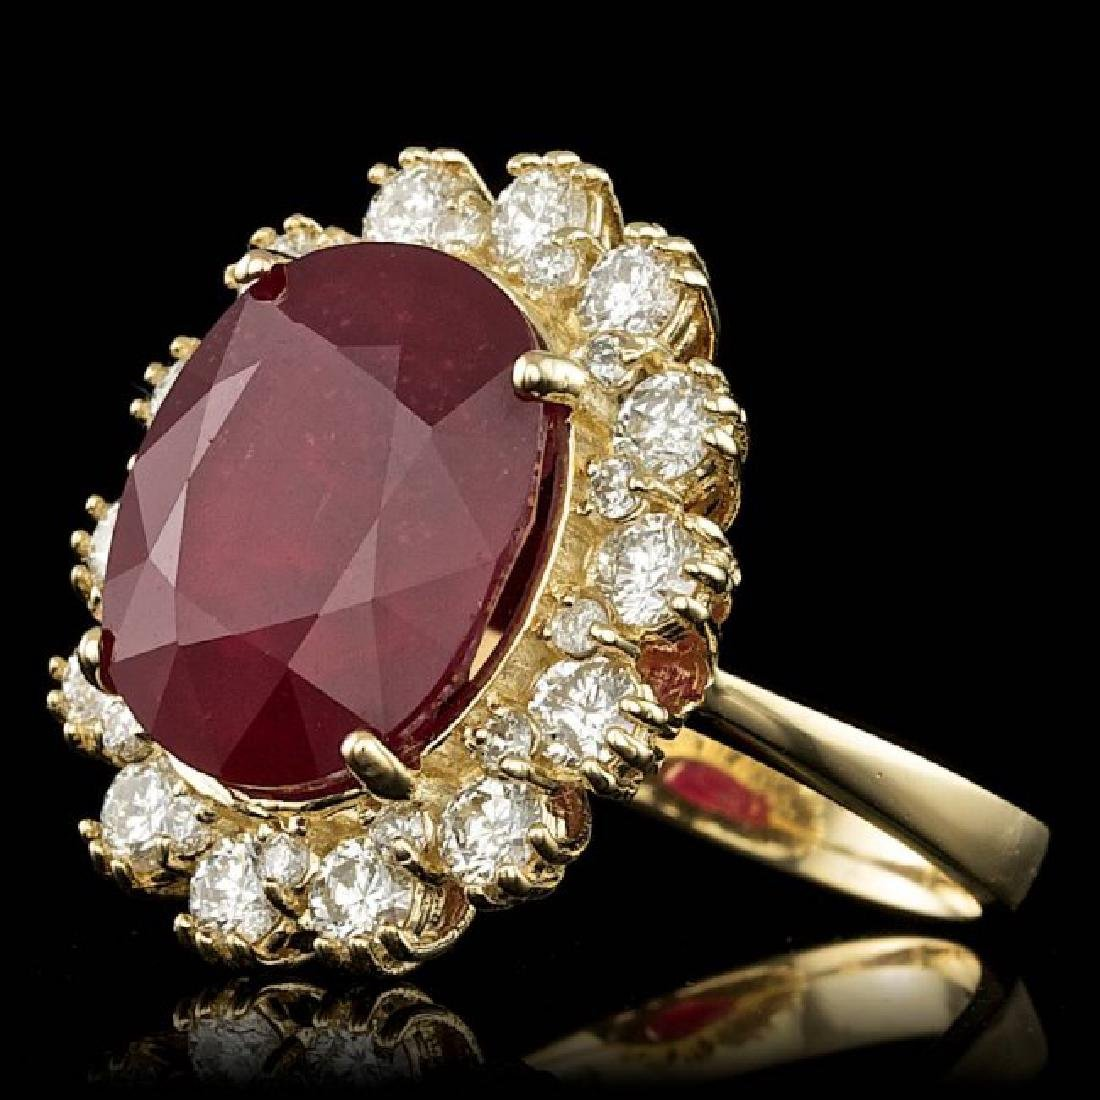 14k Yellow Gold 11.00ct Ruby 1.40ct Diamond Ring - 2